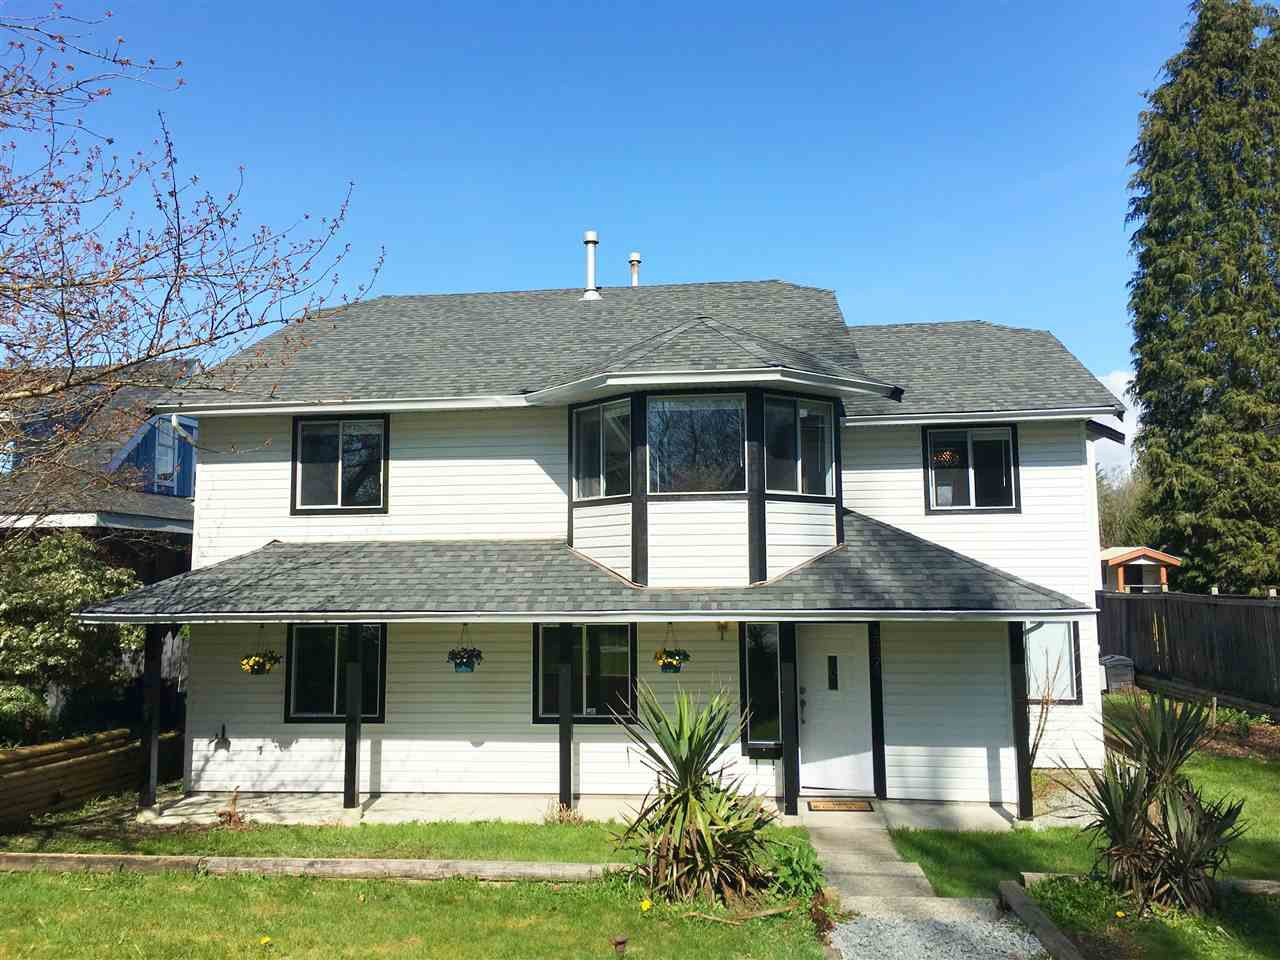 Main Photo: 23375 124 Avenue in Maple Ridge: East Central House for sale : MLS®# R2048658